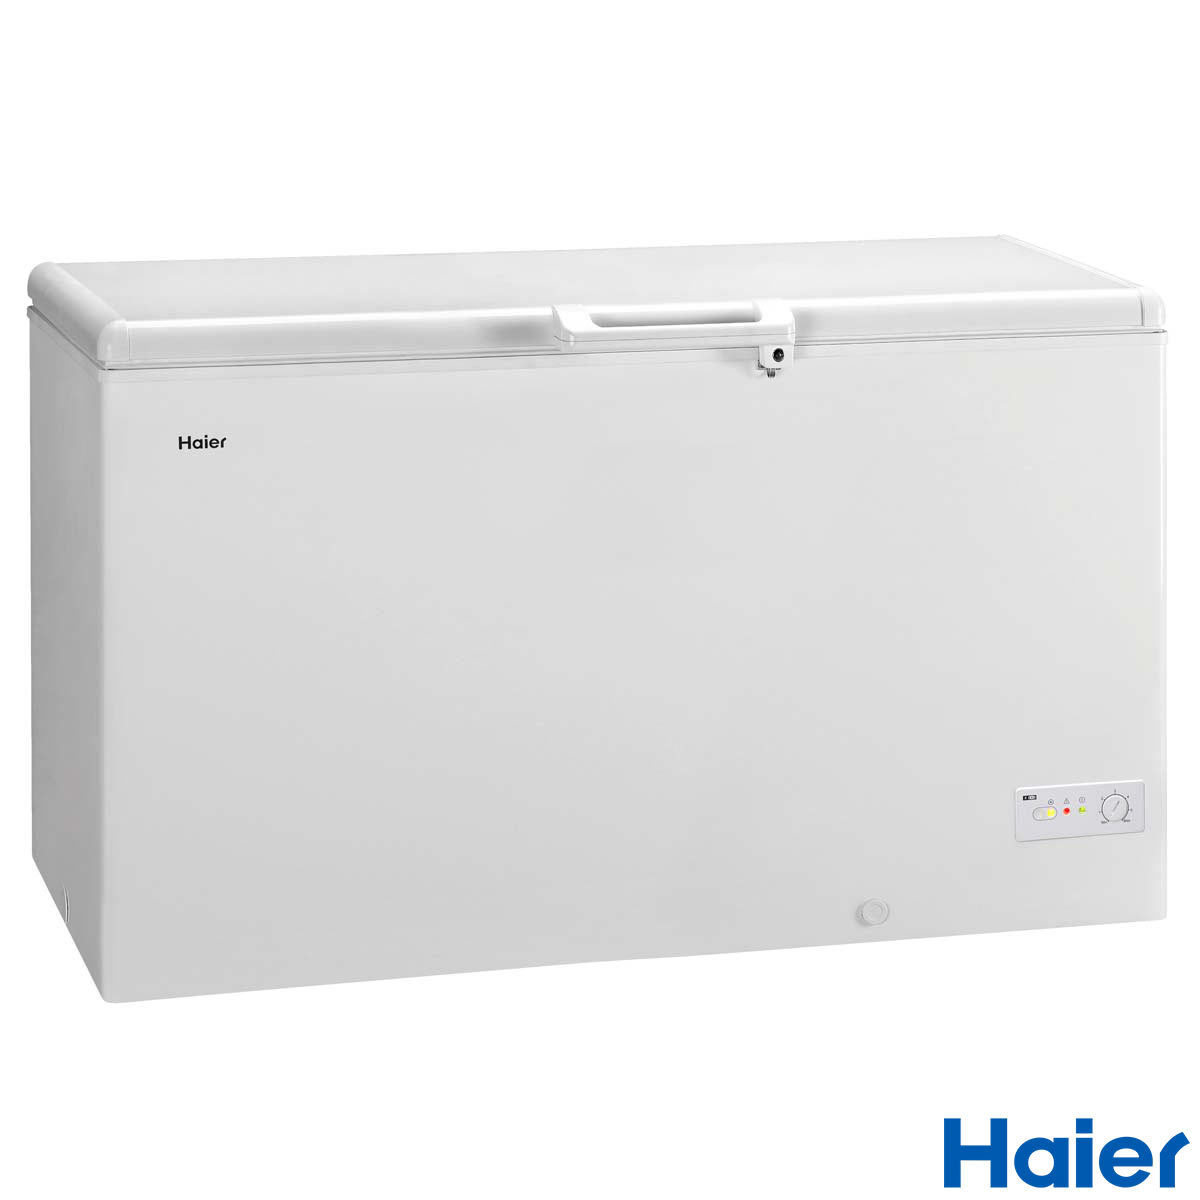 Haier Bd 429raa 429l A Rating Chest Freezer In White Costco Uk 100 Box